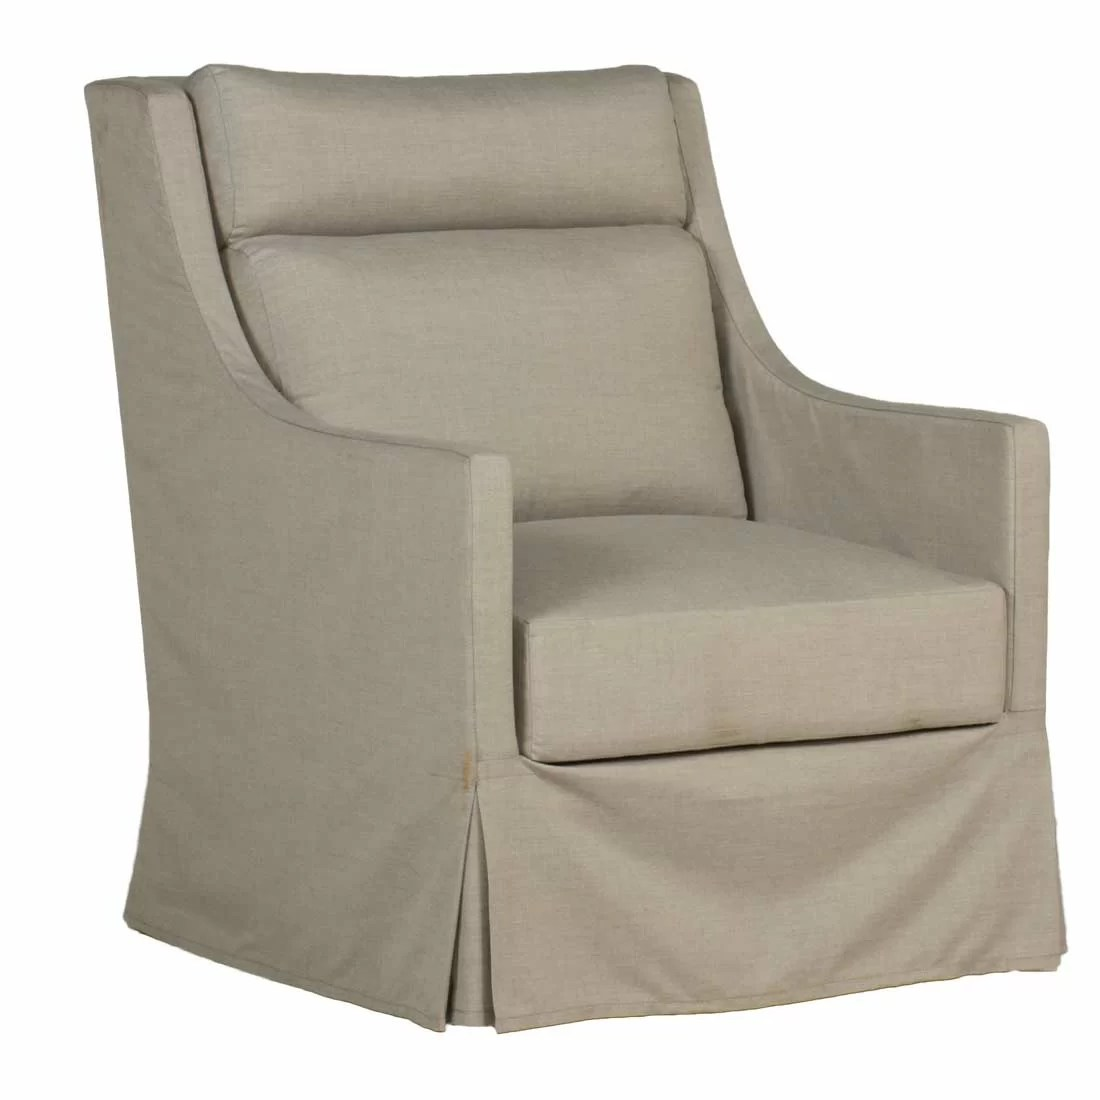 Cushions For Glider Chairs Helena Swivel Glider Chair With Cushions